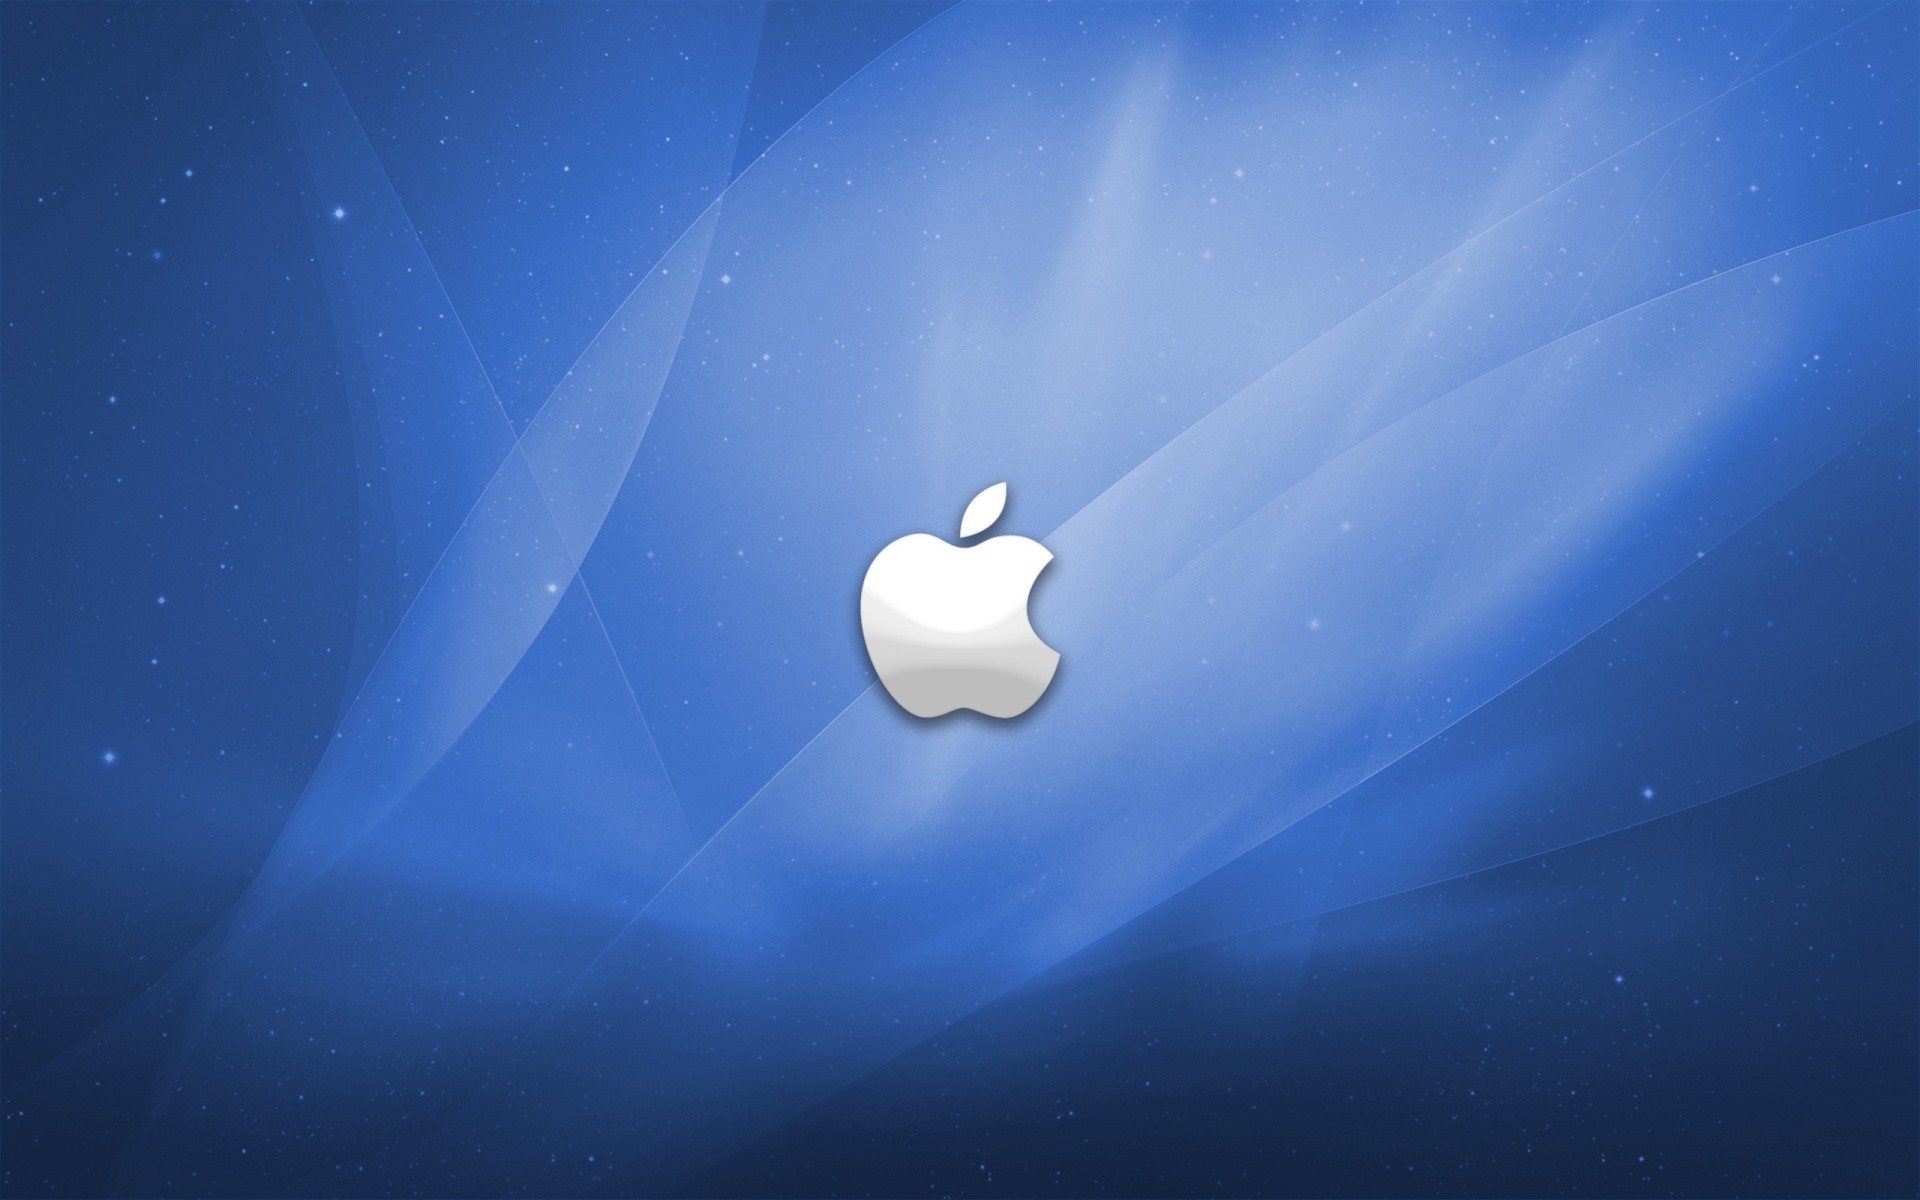 apple background ·① download free amazing full hd wallpapers for